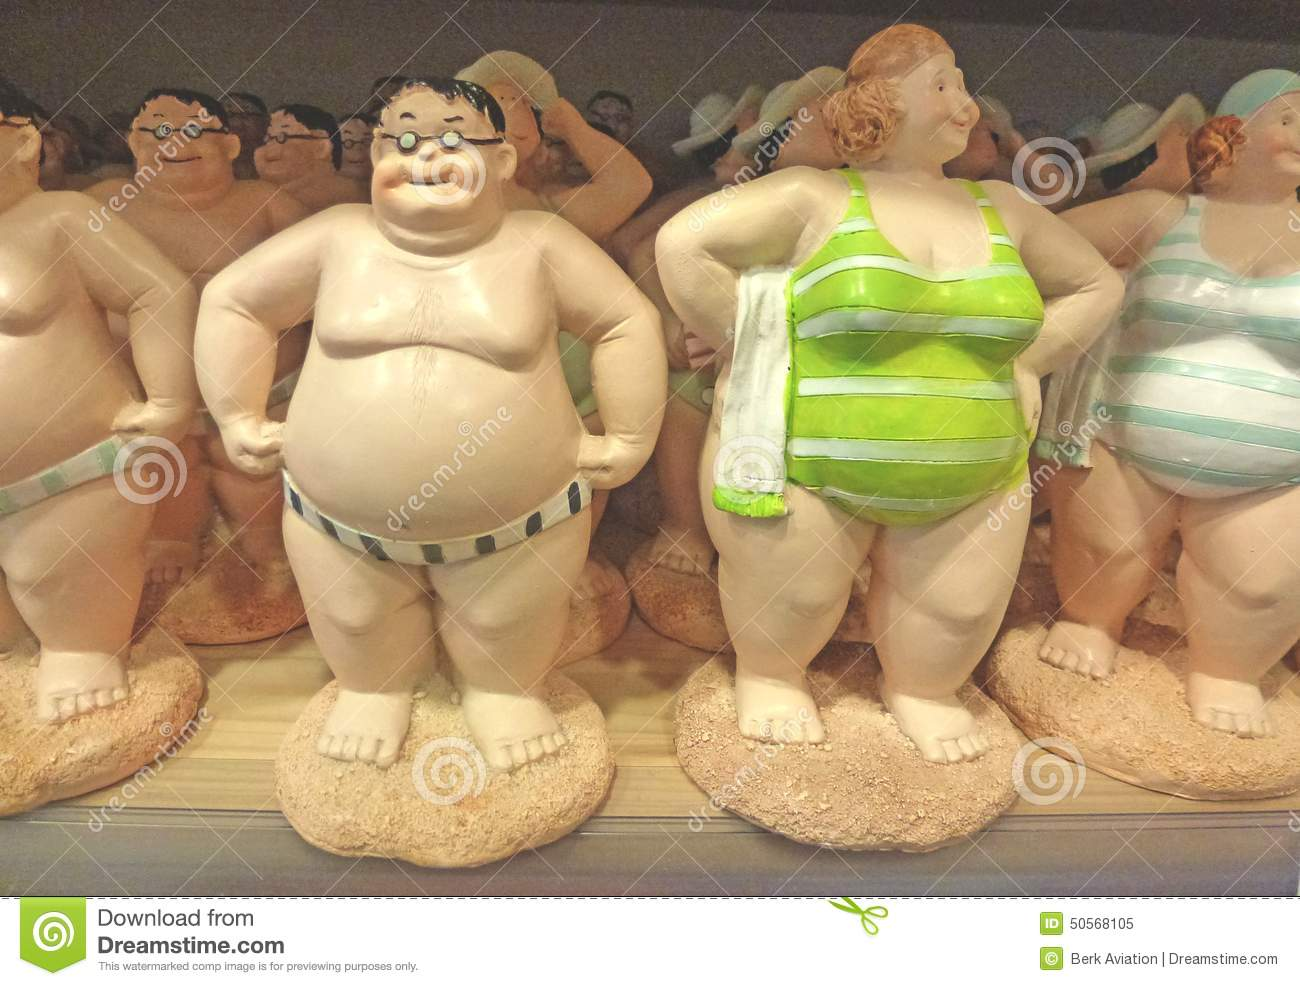 Bathing Suit For Fat People 2